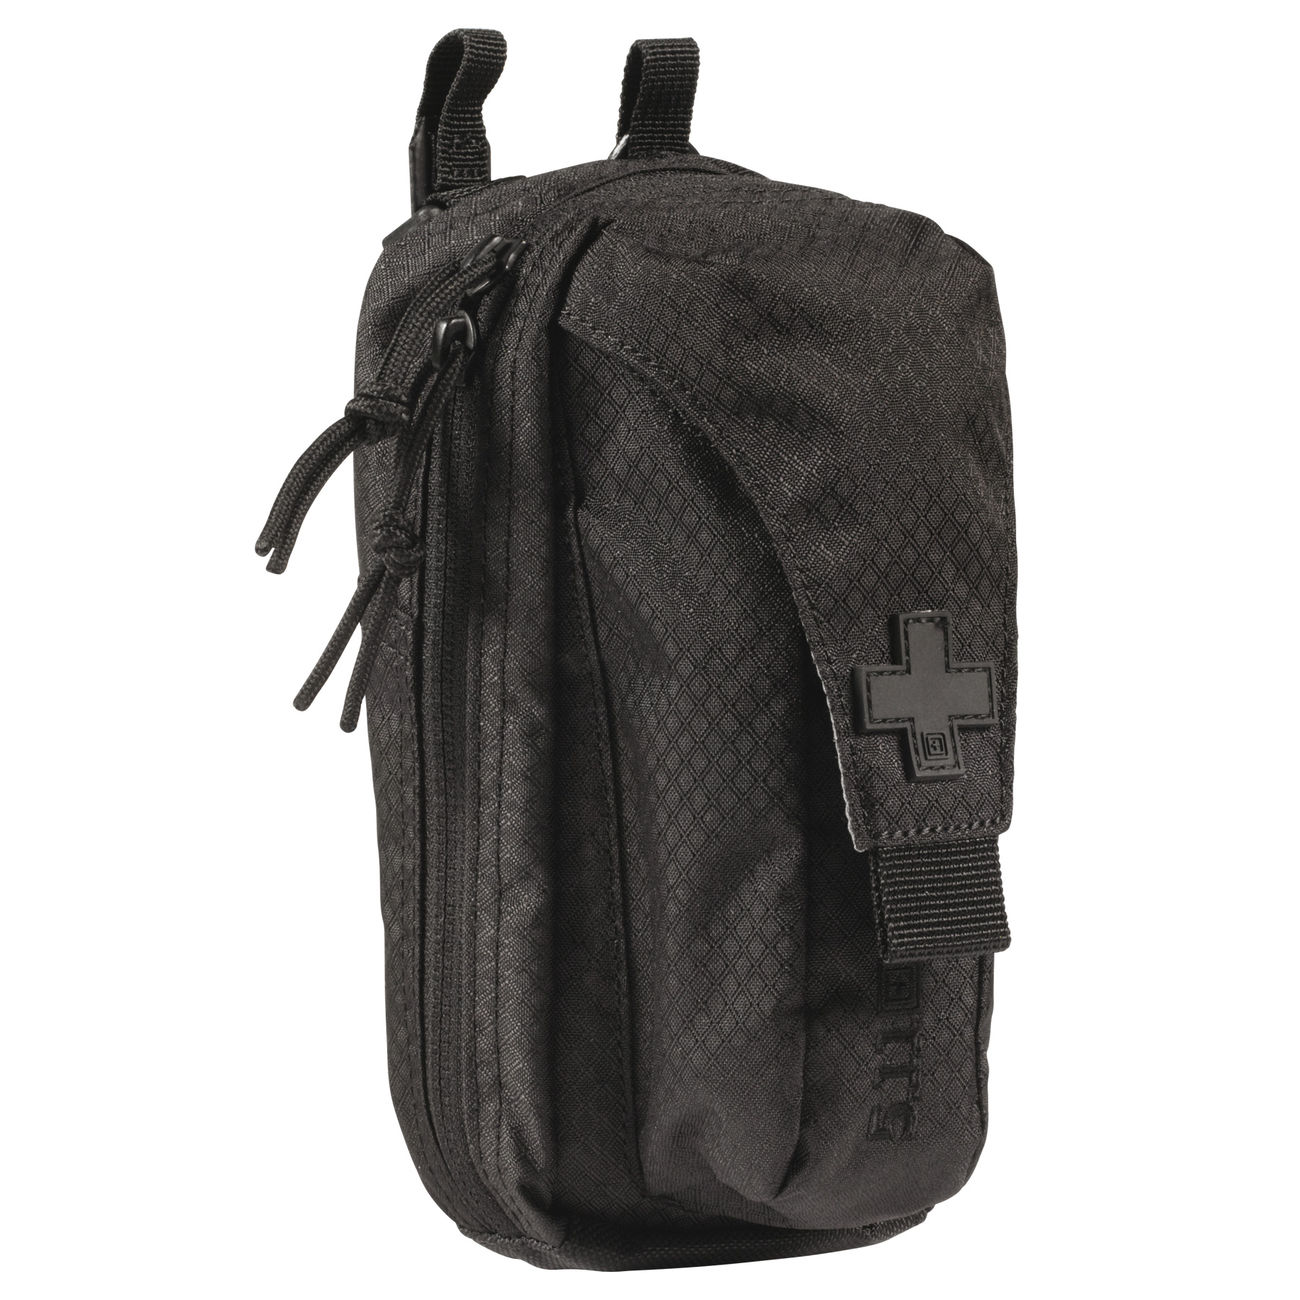 5.11 Ignitor Med Pouch schwarz 1